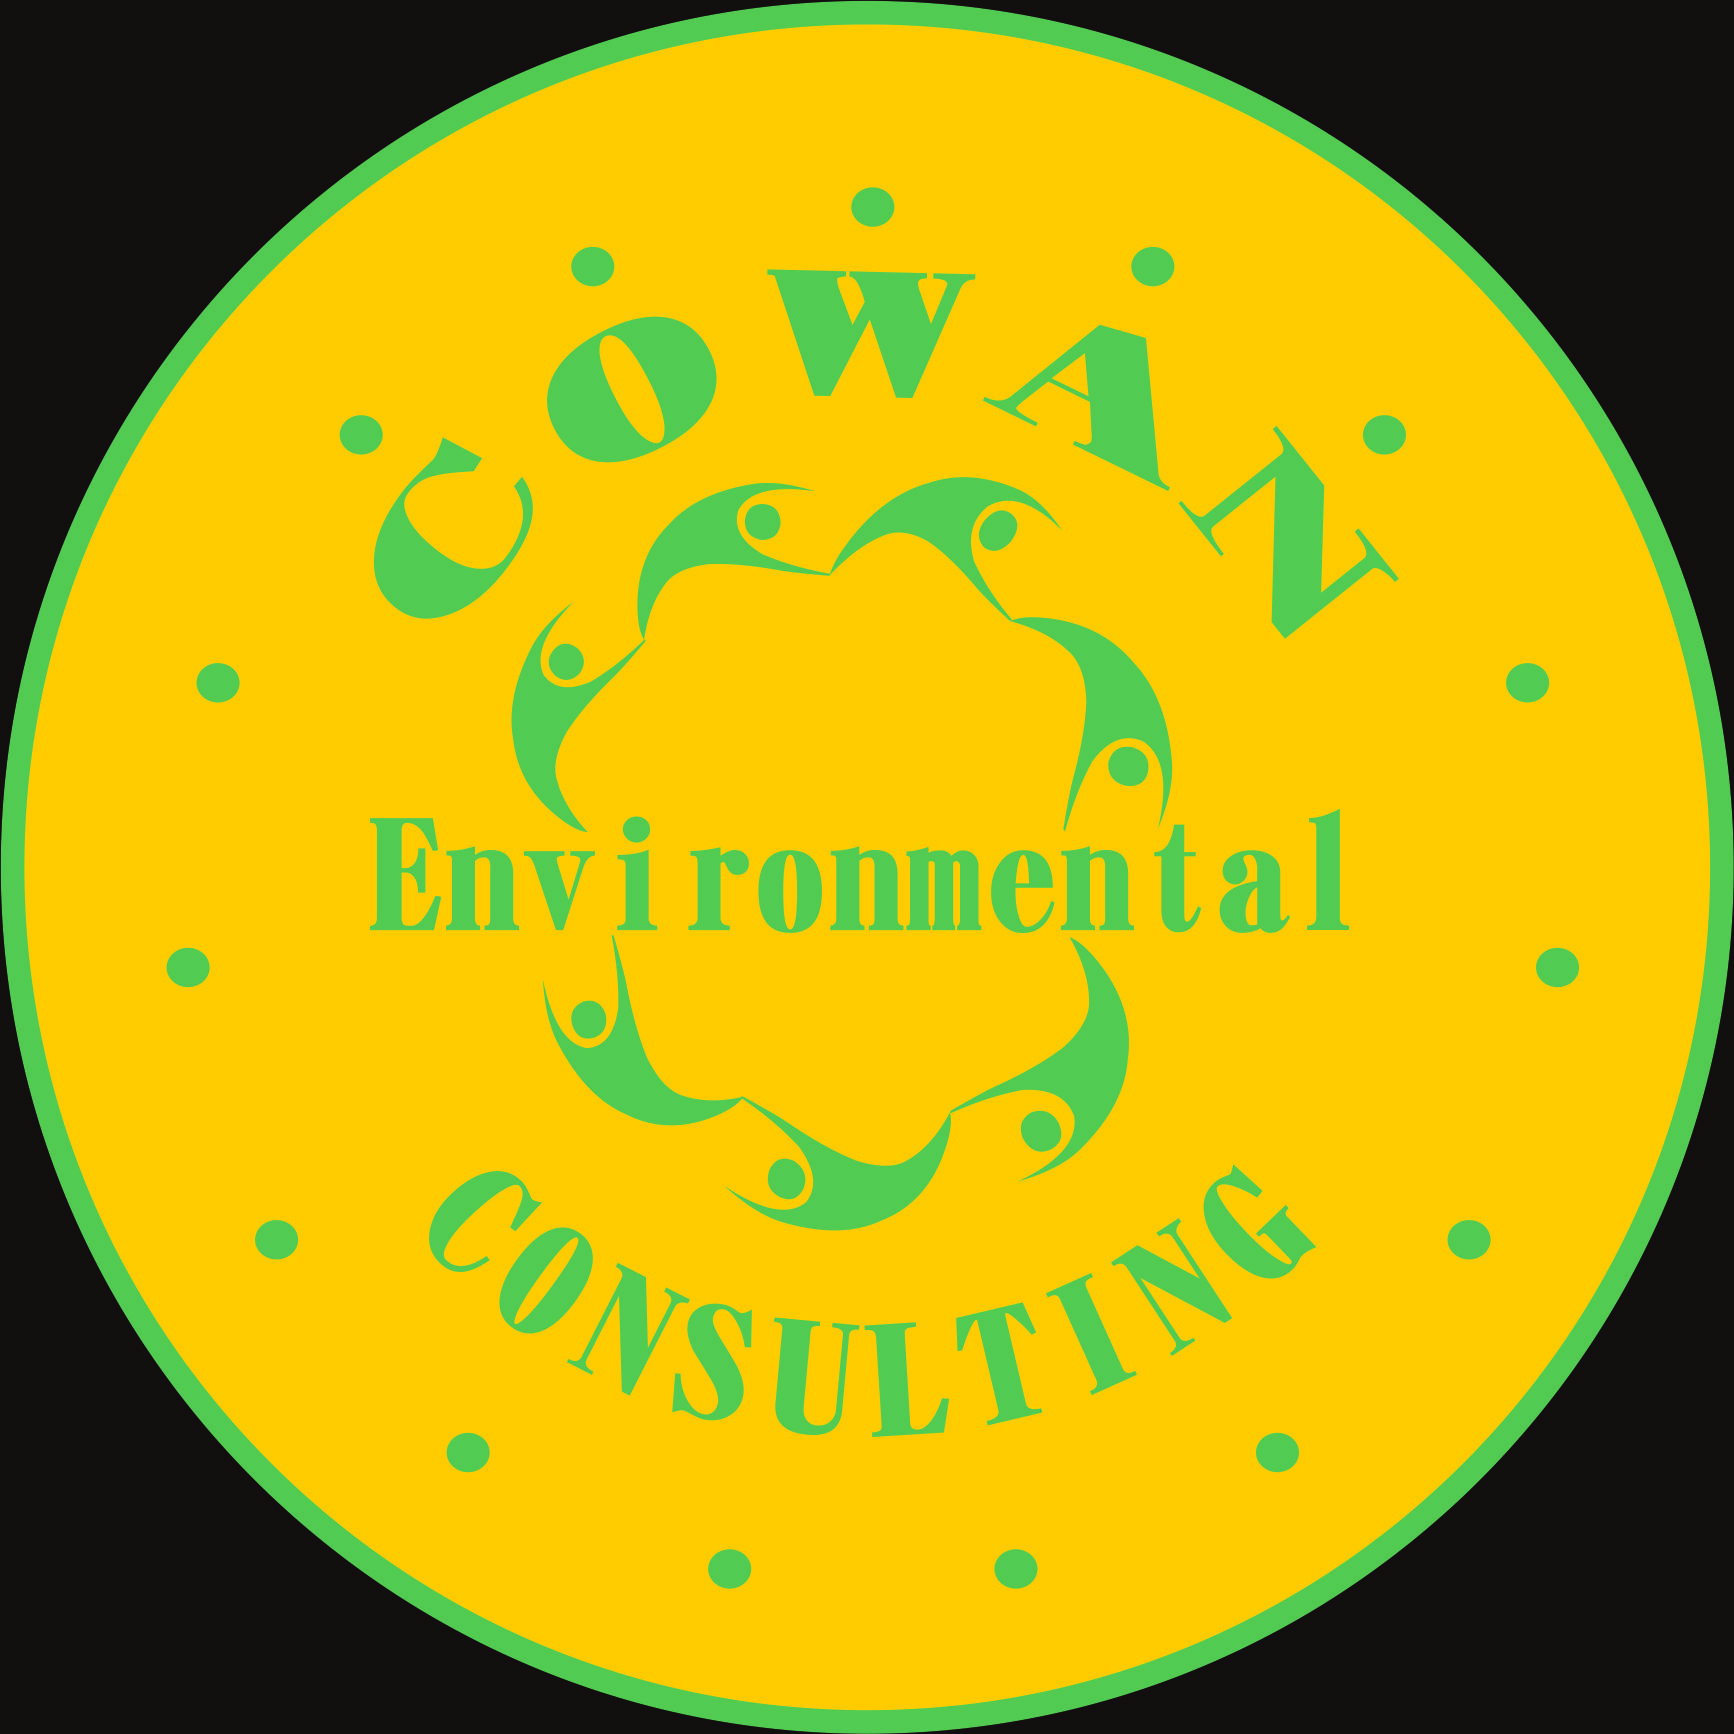 Logo Design by Teguh Hanuraga - Entry No. 19 in the Logo Design Contest Fun Logo Design for Cowan Environmental Consulting.